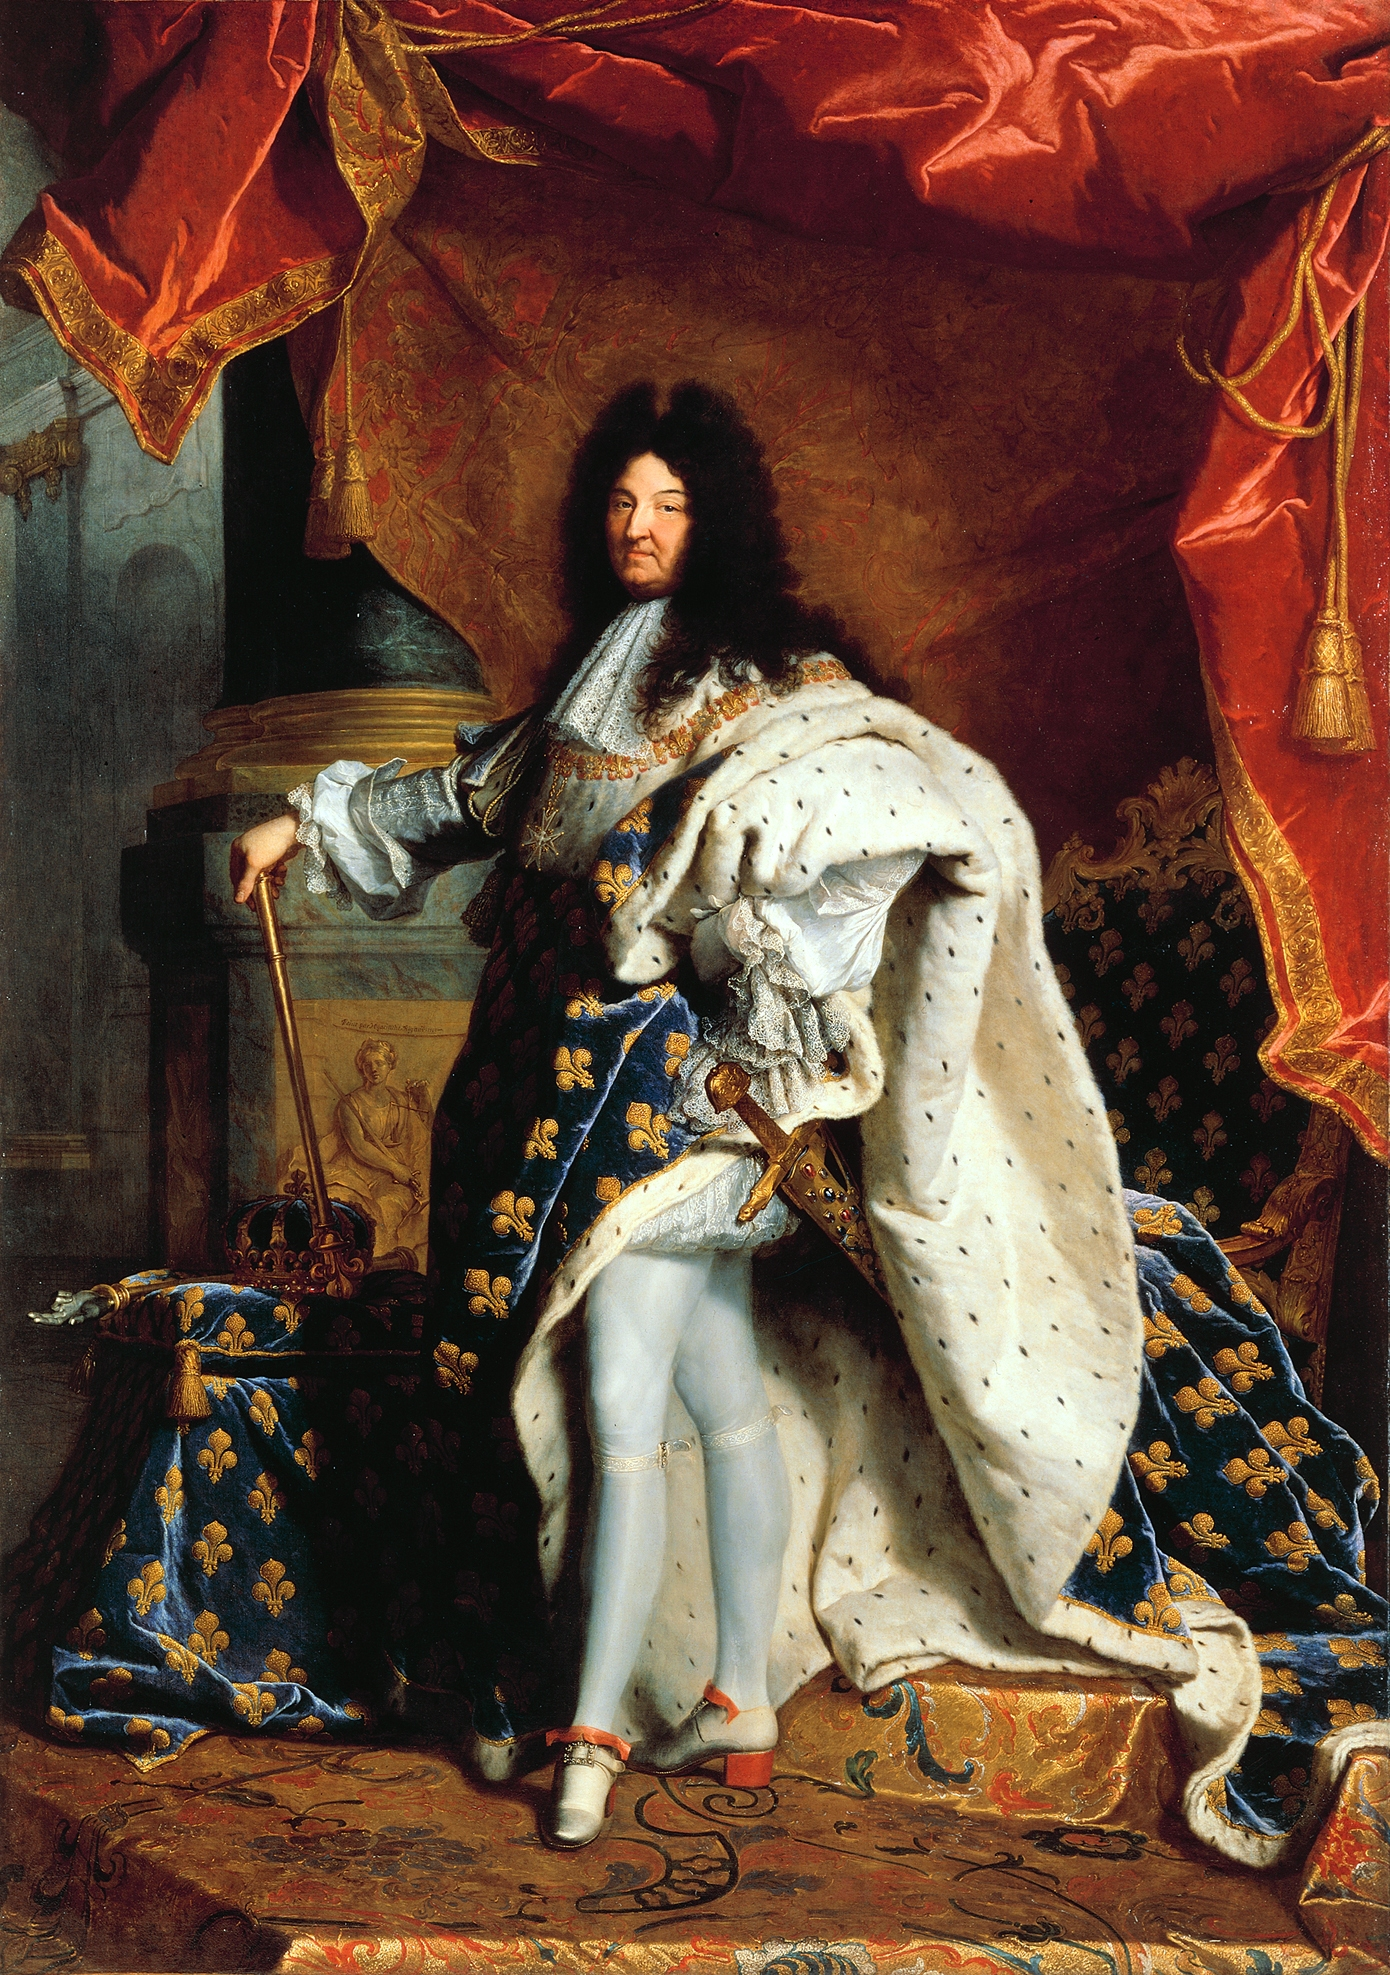 Power and Faction in Louis XIV's France, Louis XIV, baptised as Louis-Dieudonné, who ruled as King of France and of Navarre